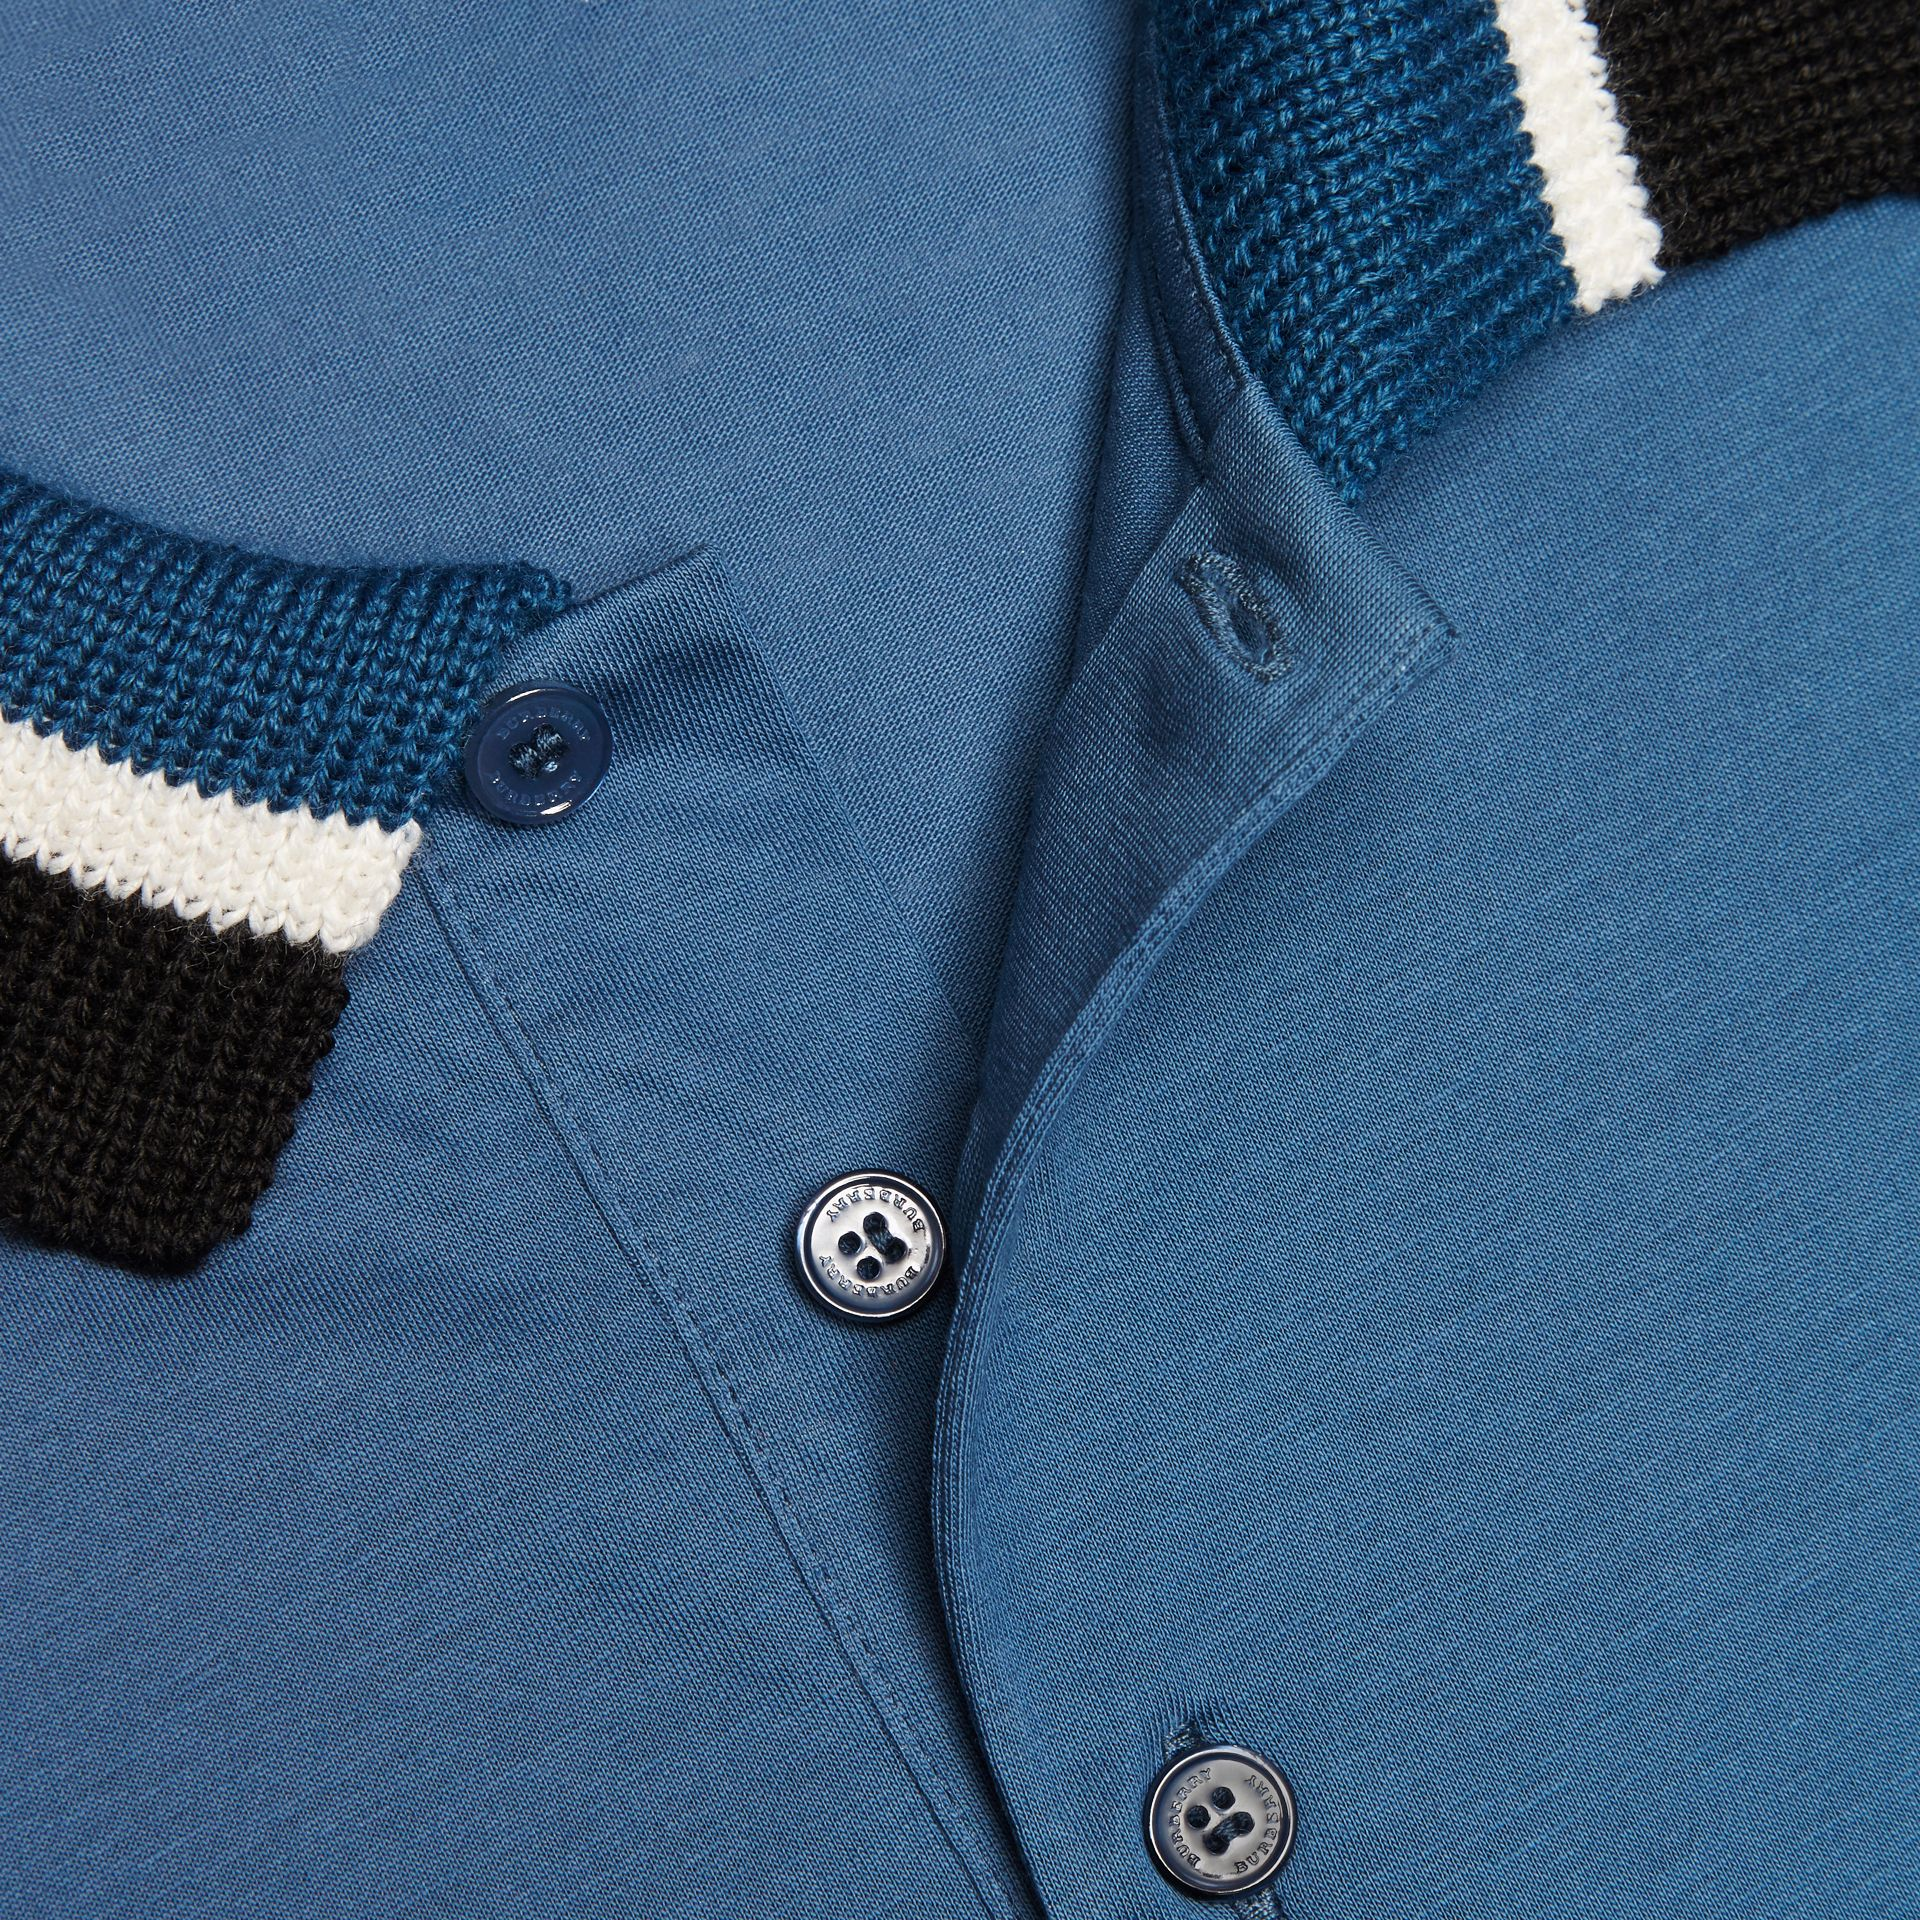 Mineral blue Cotton Polo Shirt with Knitted Collar Mineral Blue - gallery image 2